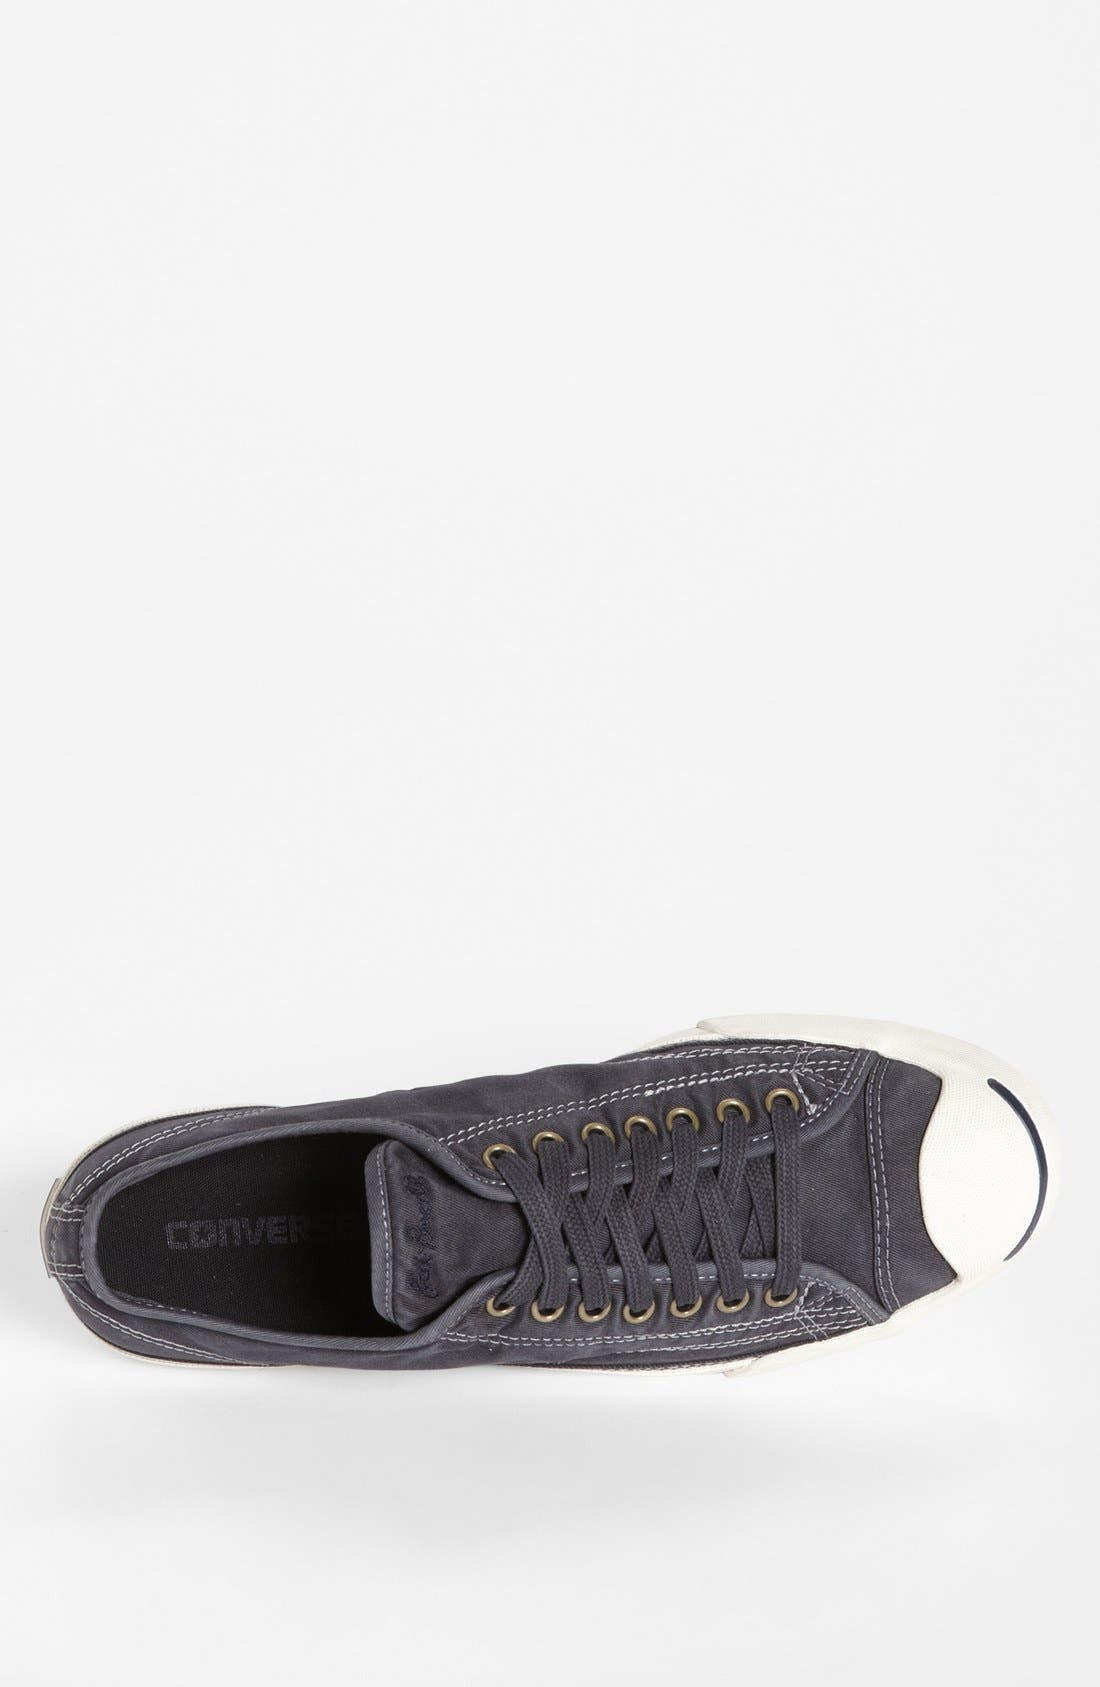 Alternate Image 3  - Converse 'Jack Purcell LP' Slip-On Sneaker (Men)